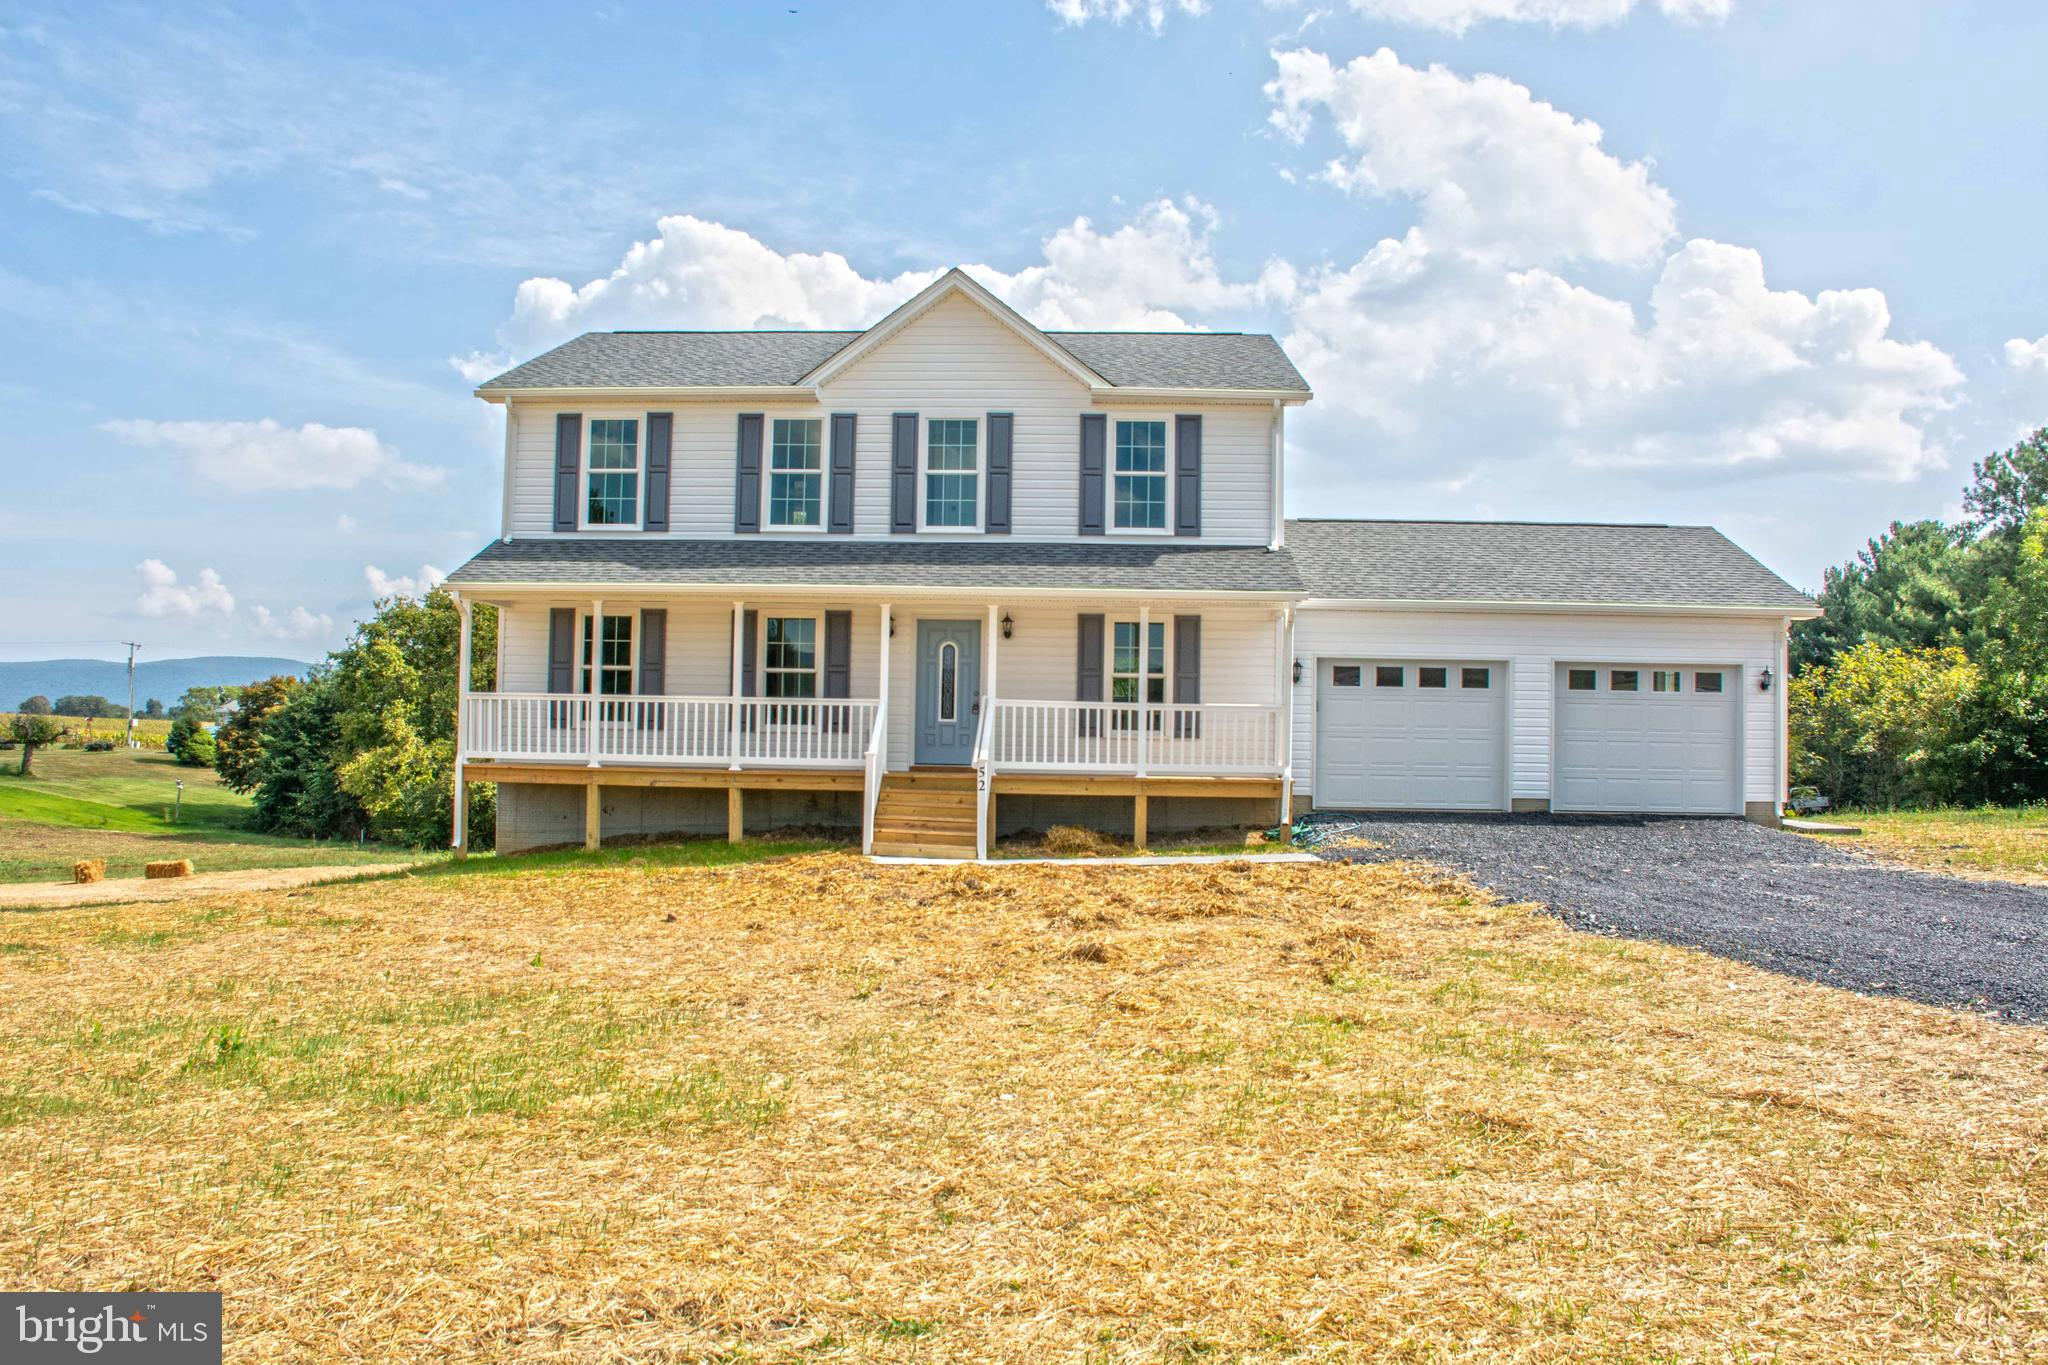 52 WESLEY CHAPEL ROAD, EDINBURG, VA 22824